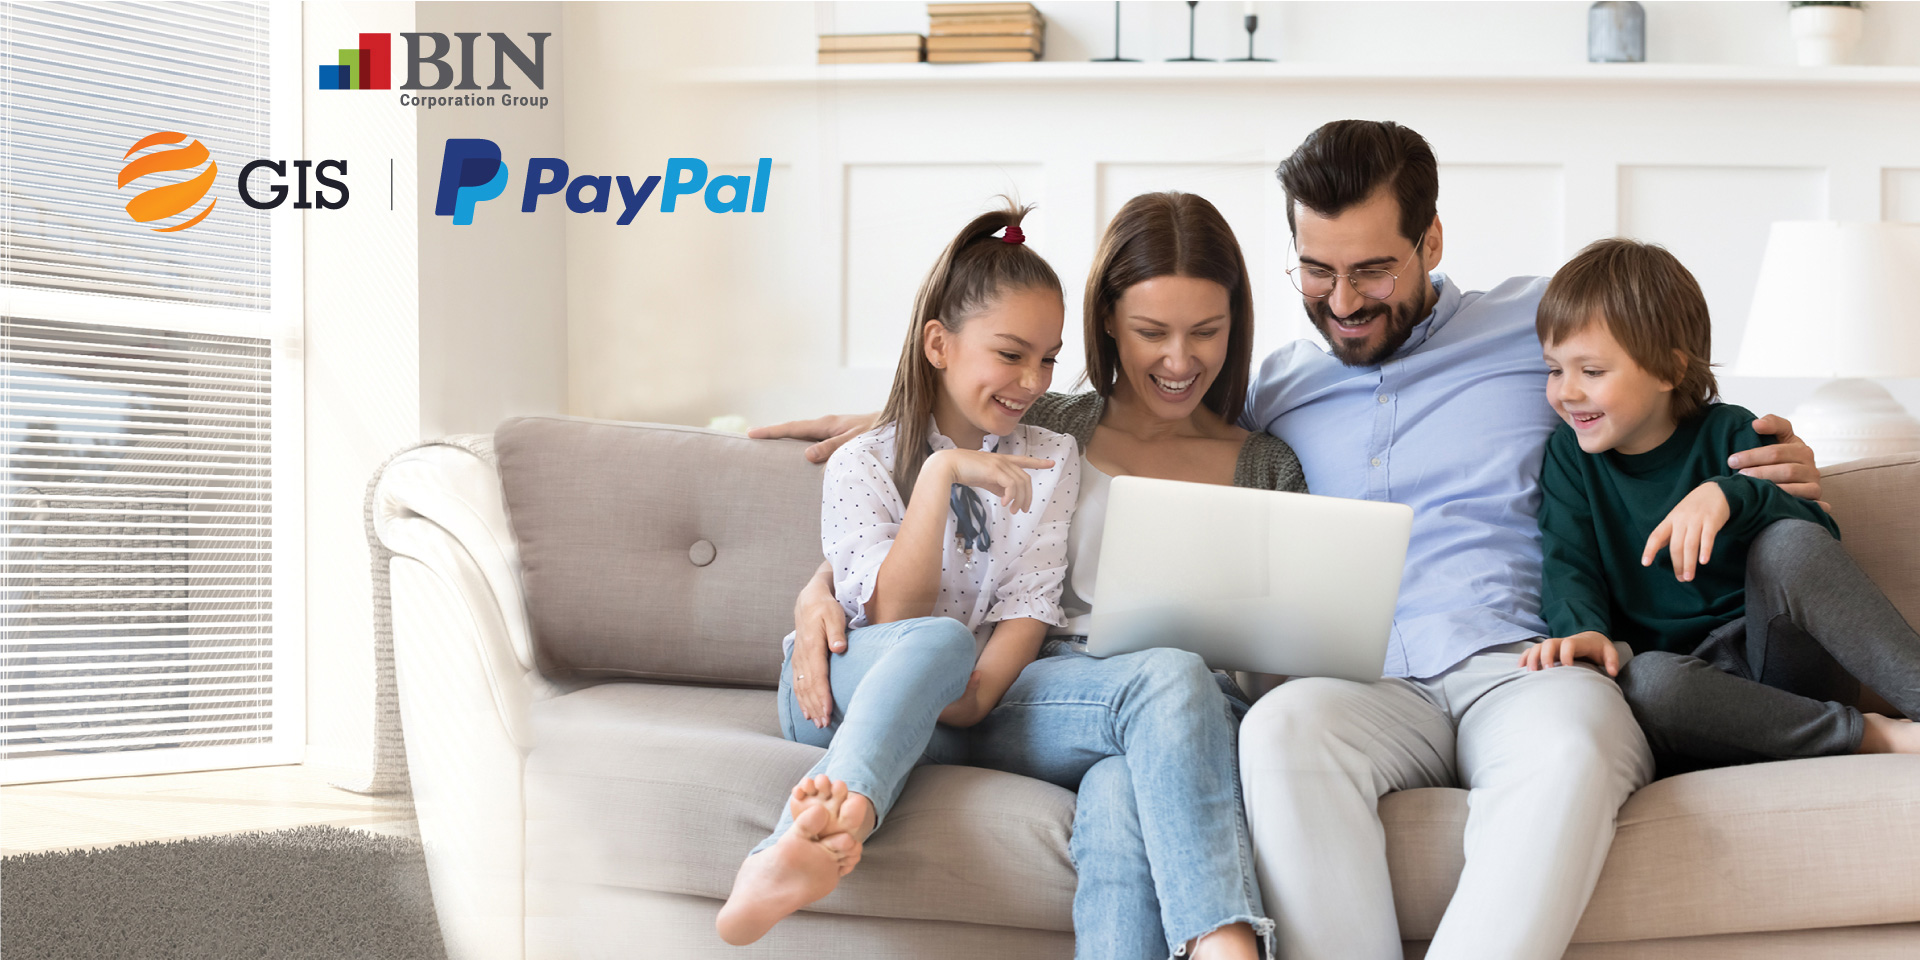 PayPal evaluates GIS as a great partner, because of its high quality of service and the potential of international clients.